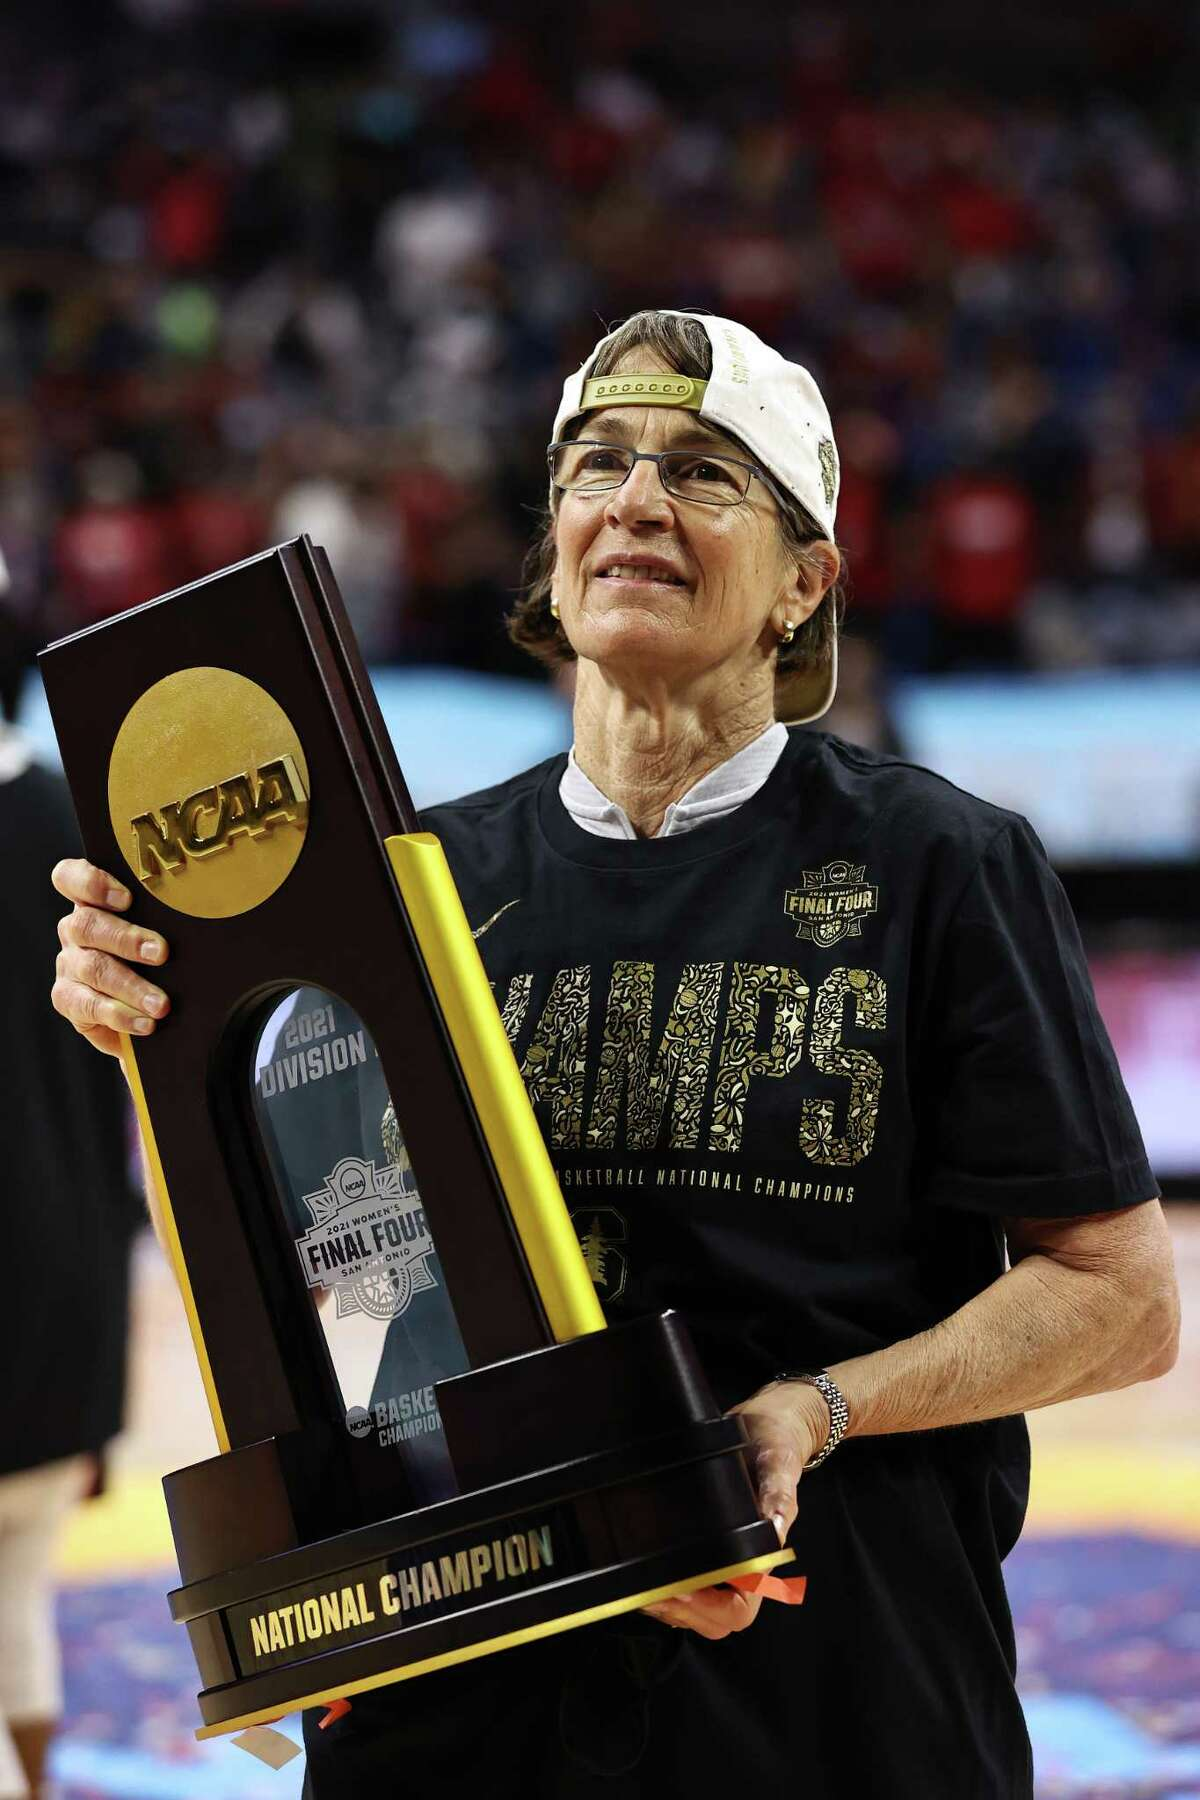 Stanford coach Tara VanDerveer celebrates with the trophy after the team's win against Arizona in the National Championship game on April 4, 2021. VanDerveer said things have changed a lot from when she was playing in college, starting at UAlbany.